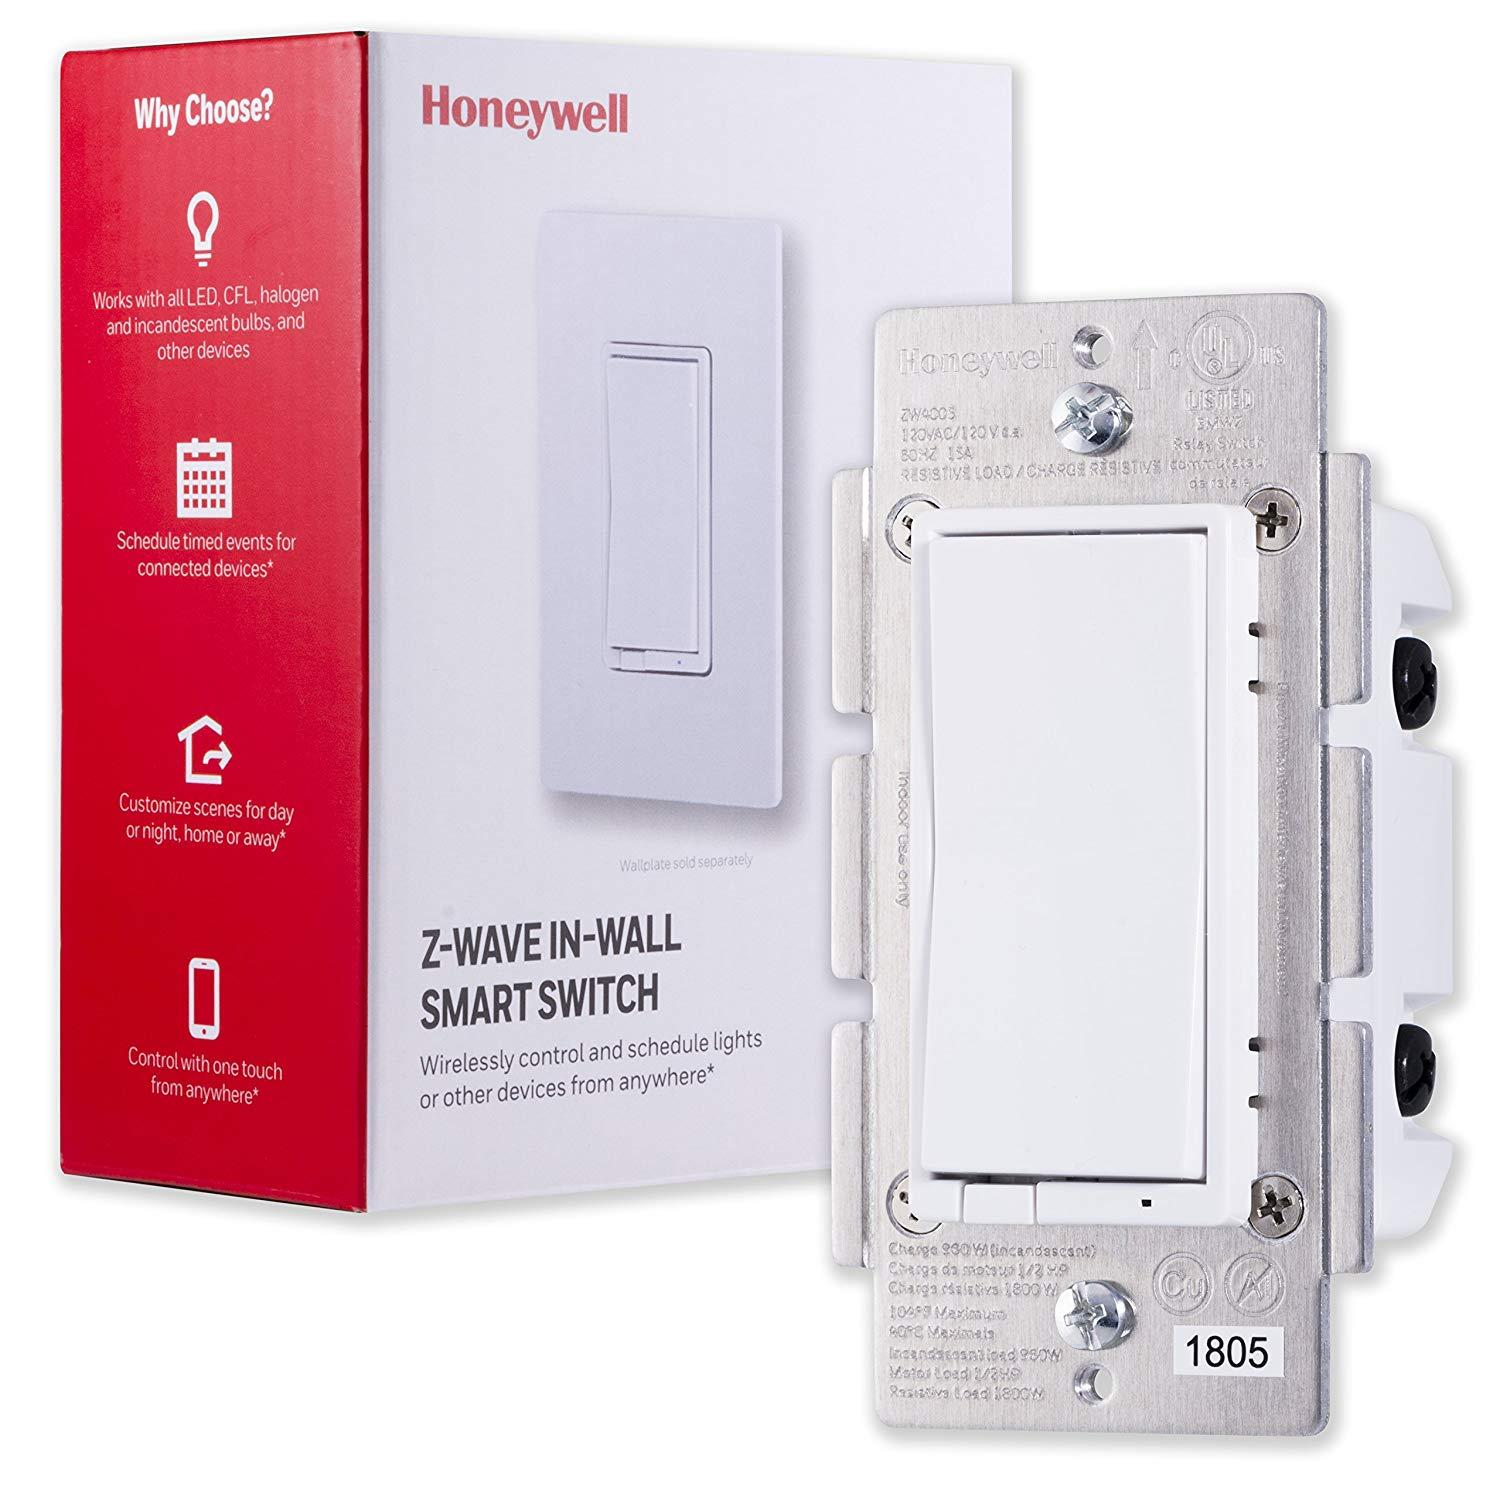 Honeywell Z-Wave Plus Smart Light Switch for $24.95